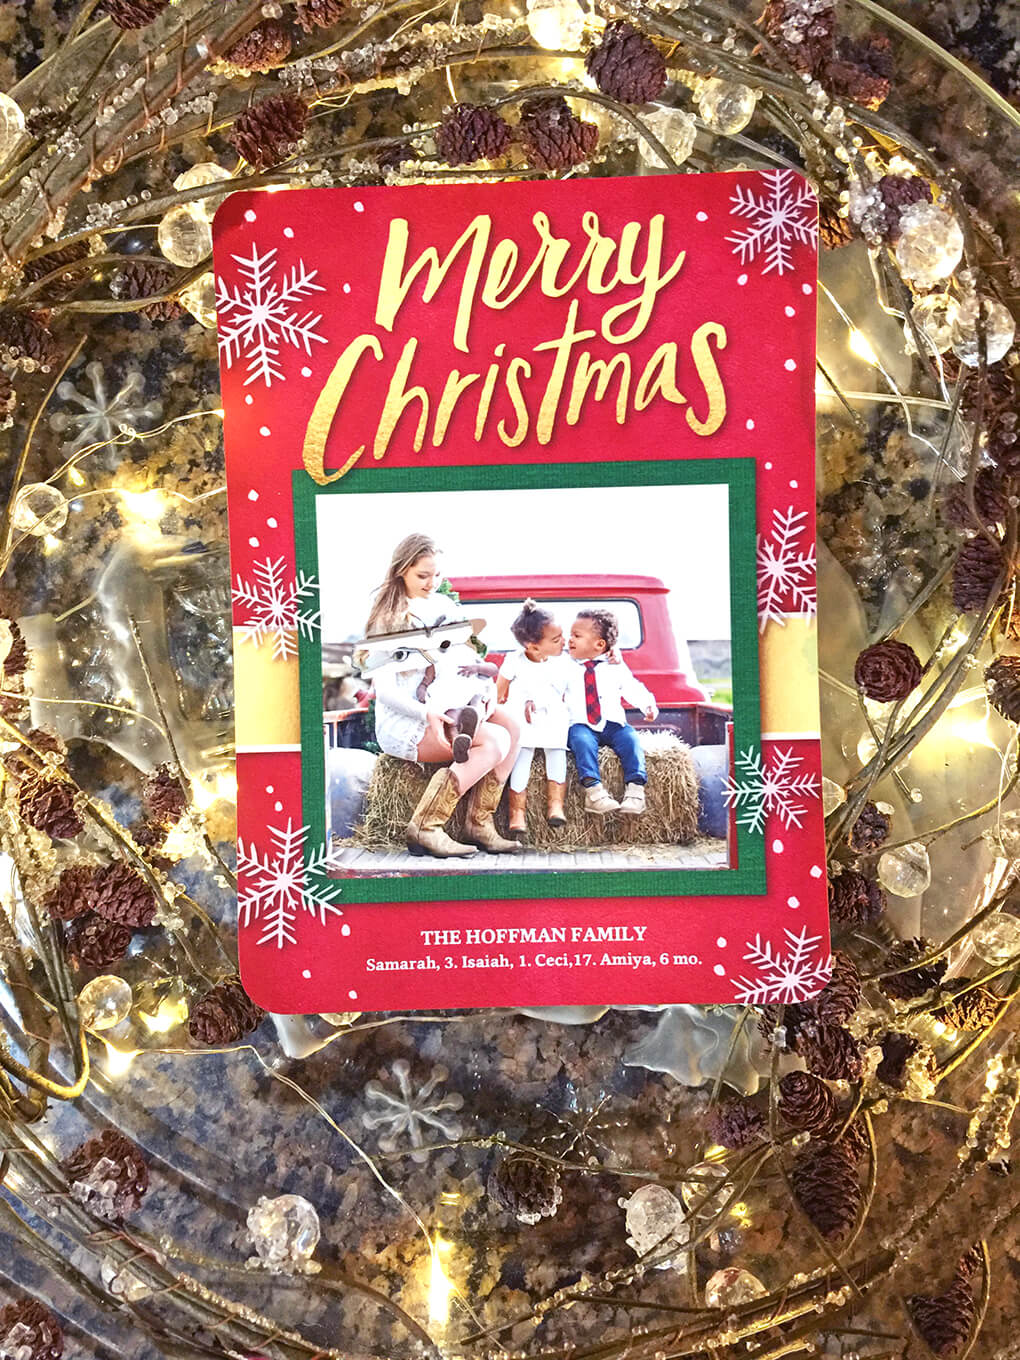 2016 Christmas Pictures sarahkayhoffman.com Shutterfly Christmas Card